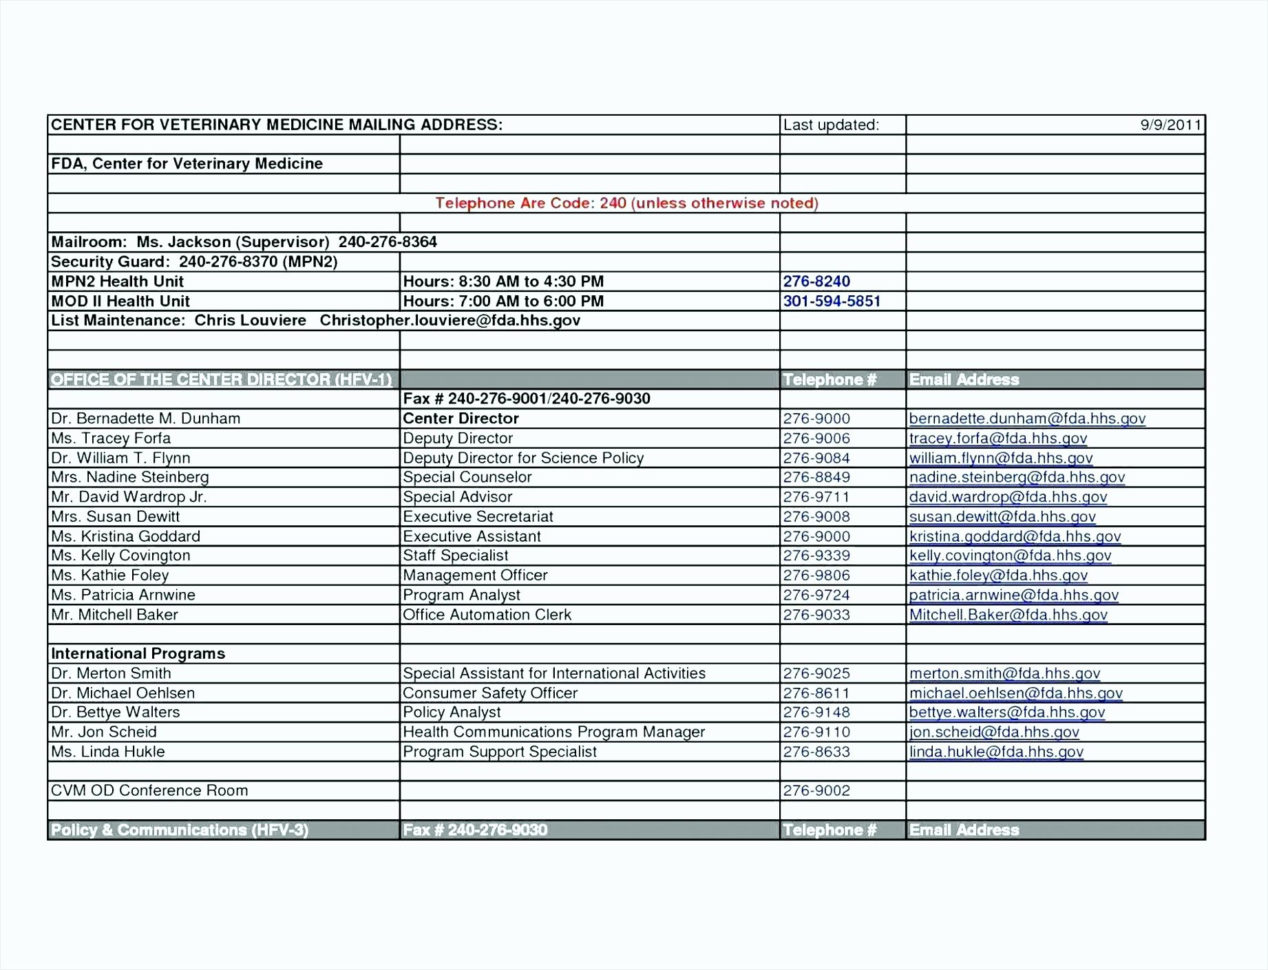 Food Cost Spreadsheet Excel For Labor Cost Template Excel And Food Cost Spreadsheet Excel Free